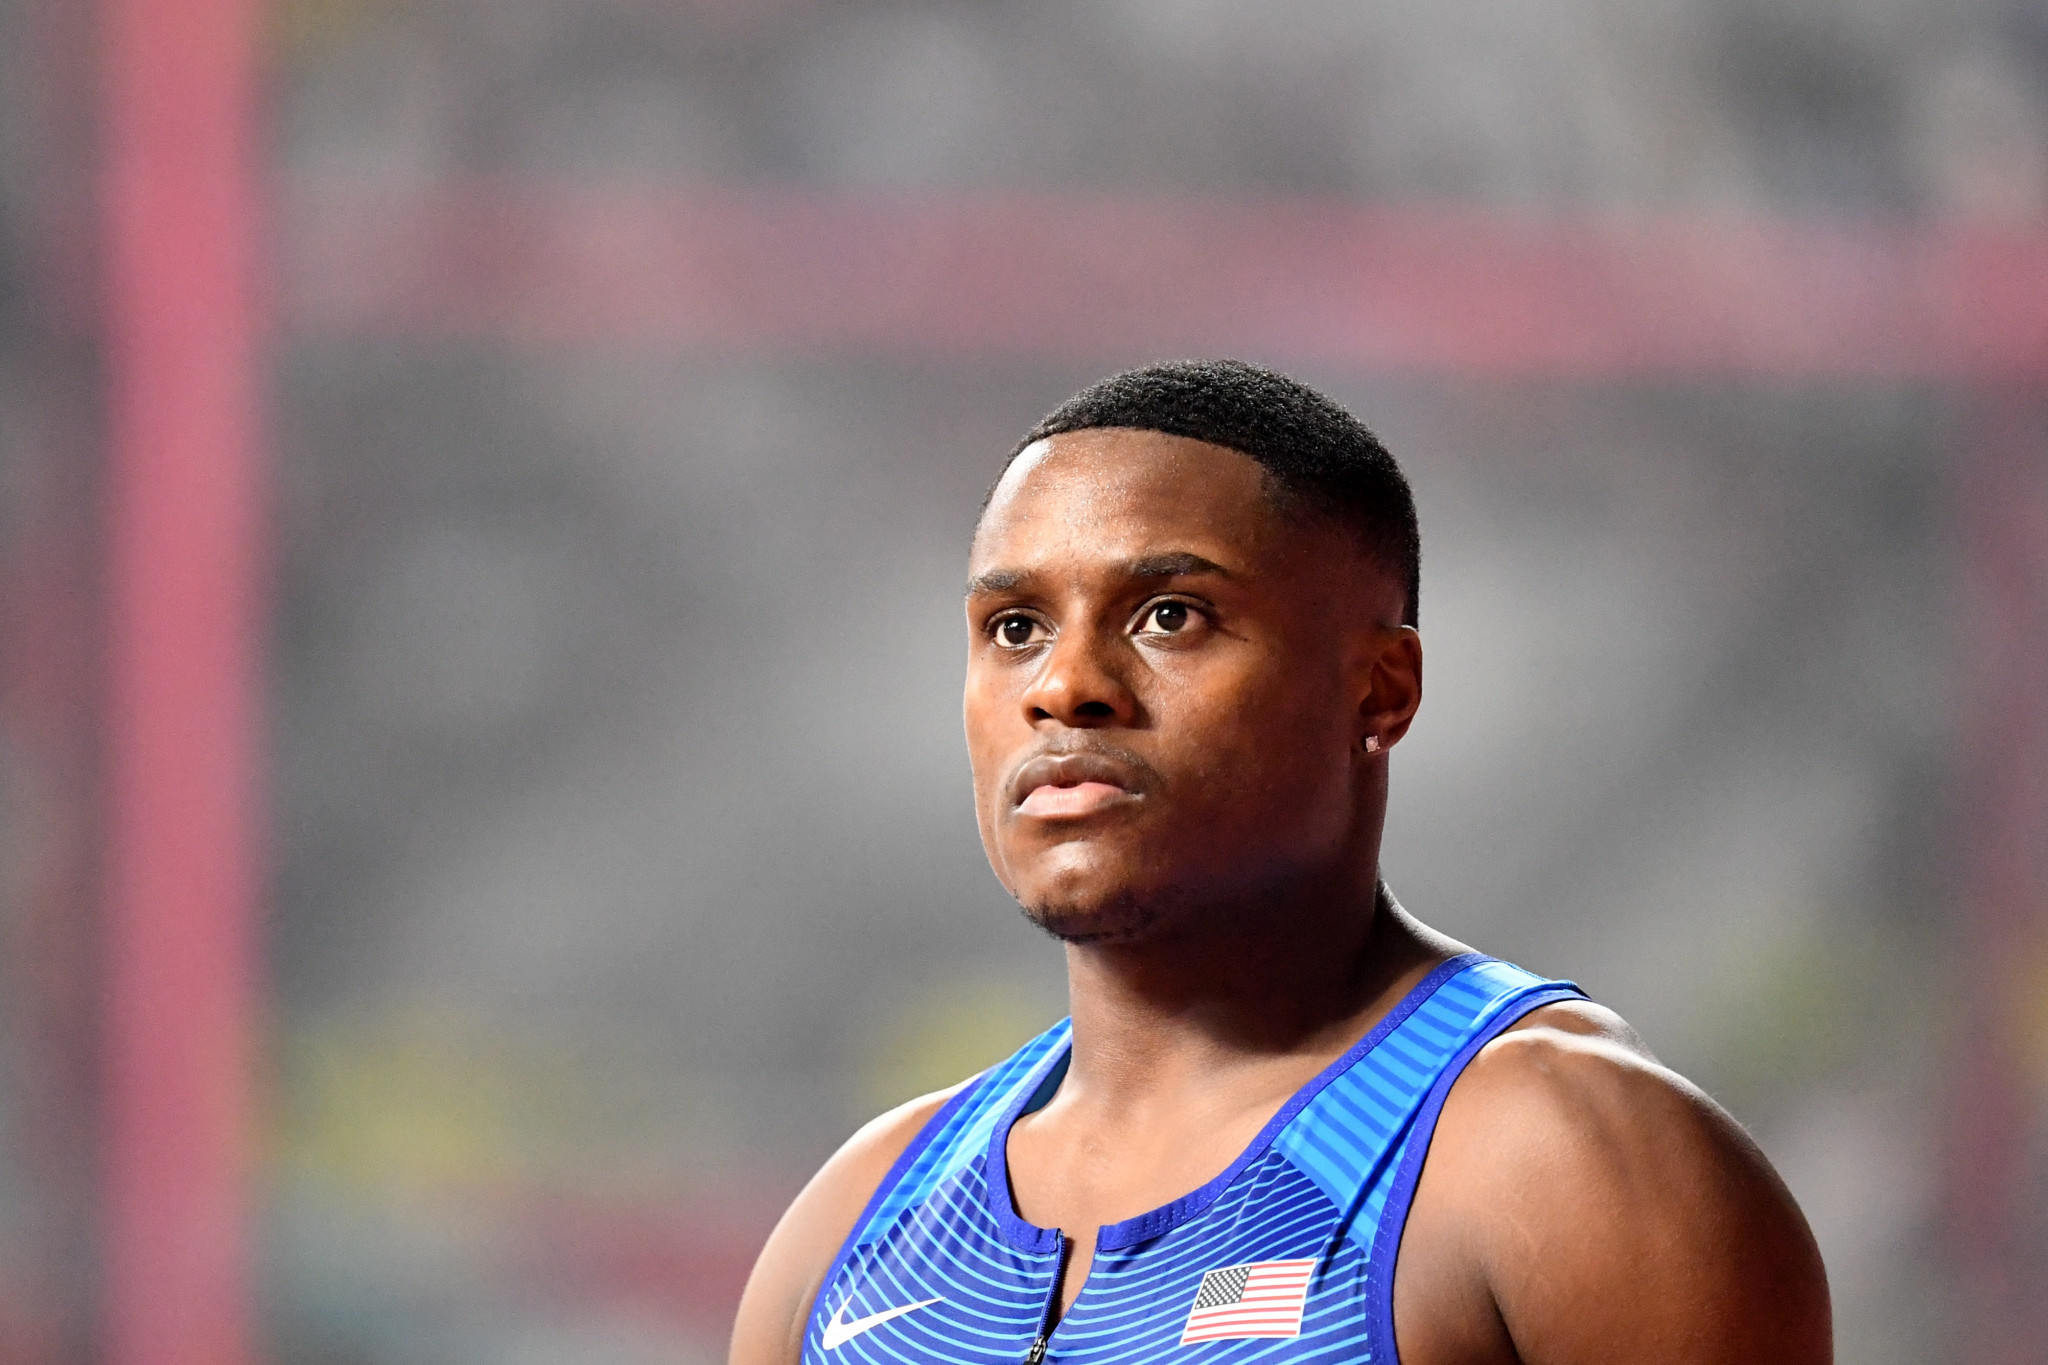 Christian Coleman is another American athlete to be hit with a suspension for whereabouts failures ©Getty Images